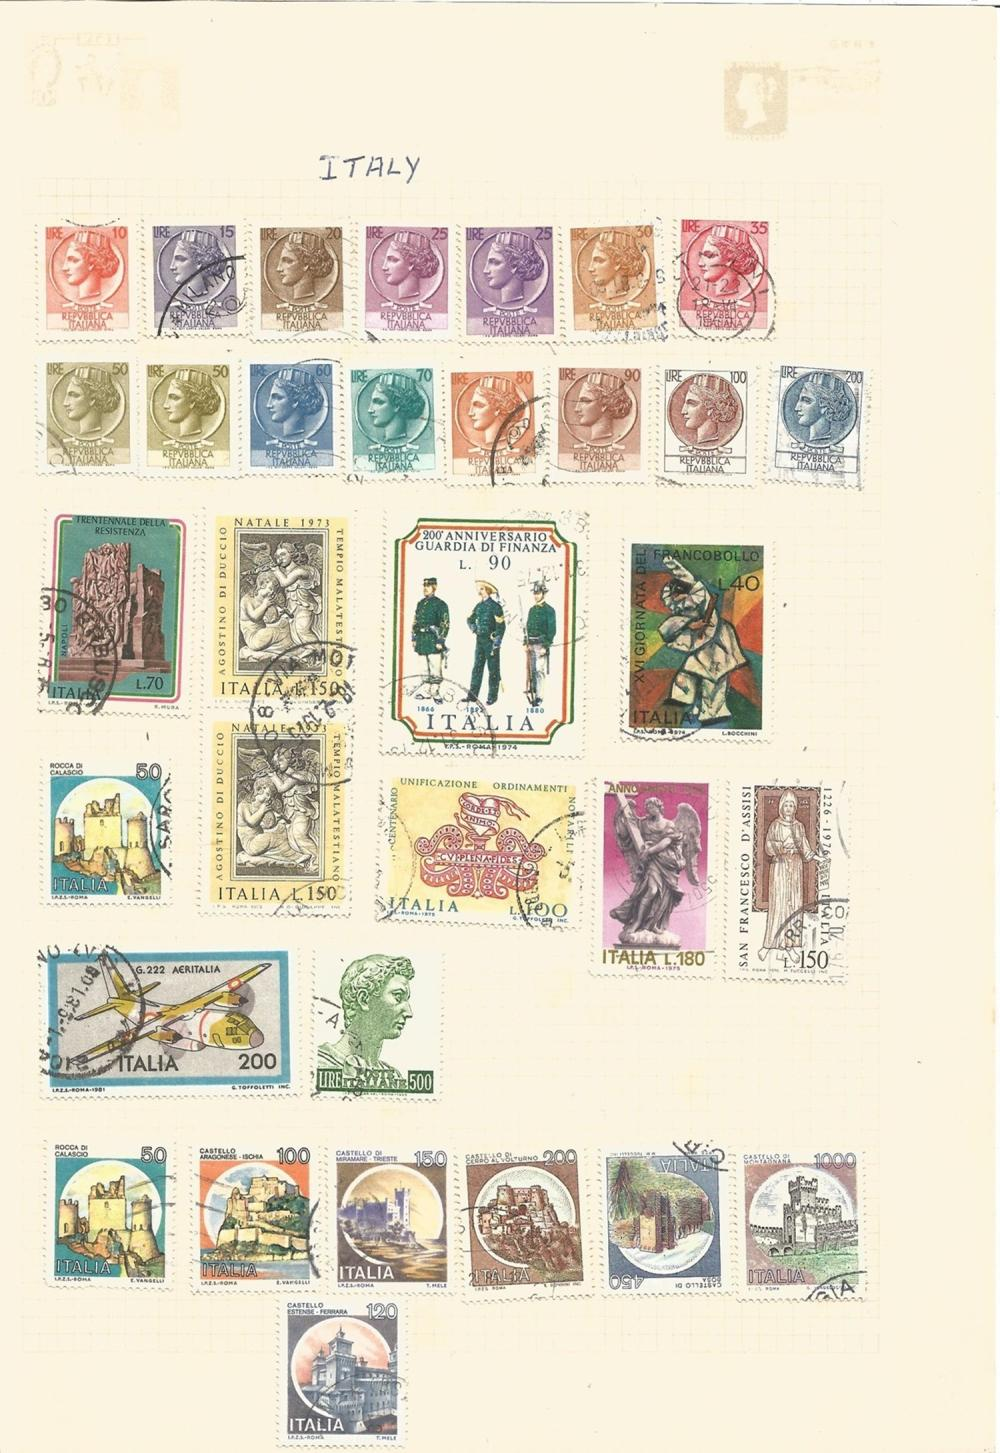 Italy, Romania, Venezuela, stamps on loose sheets, approx. 70. Good condition. We combine postage on